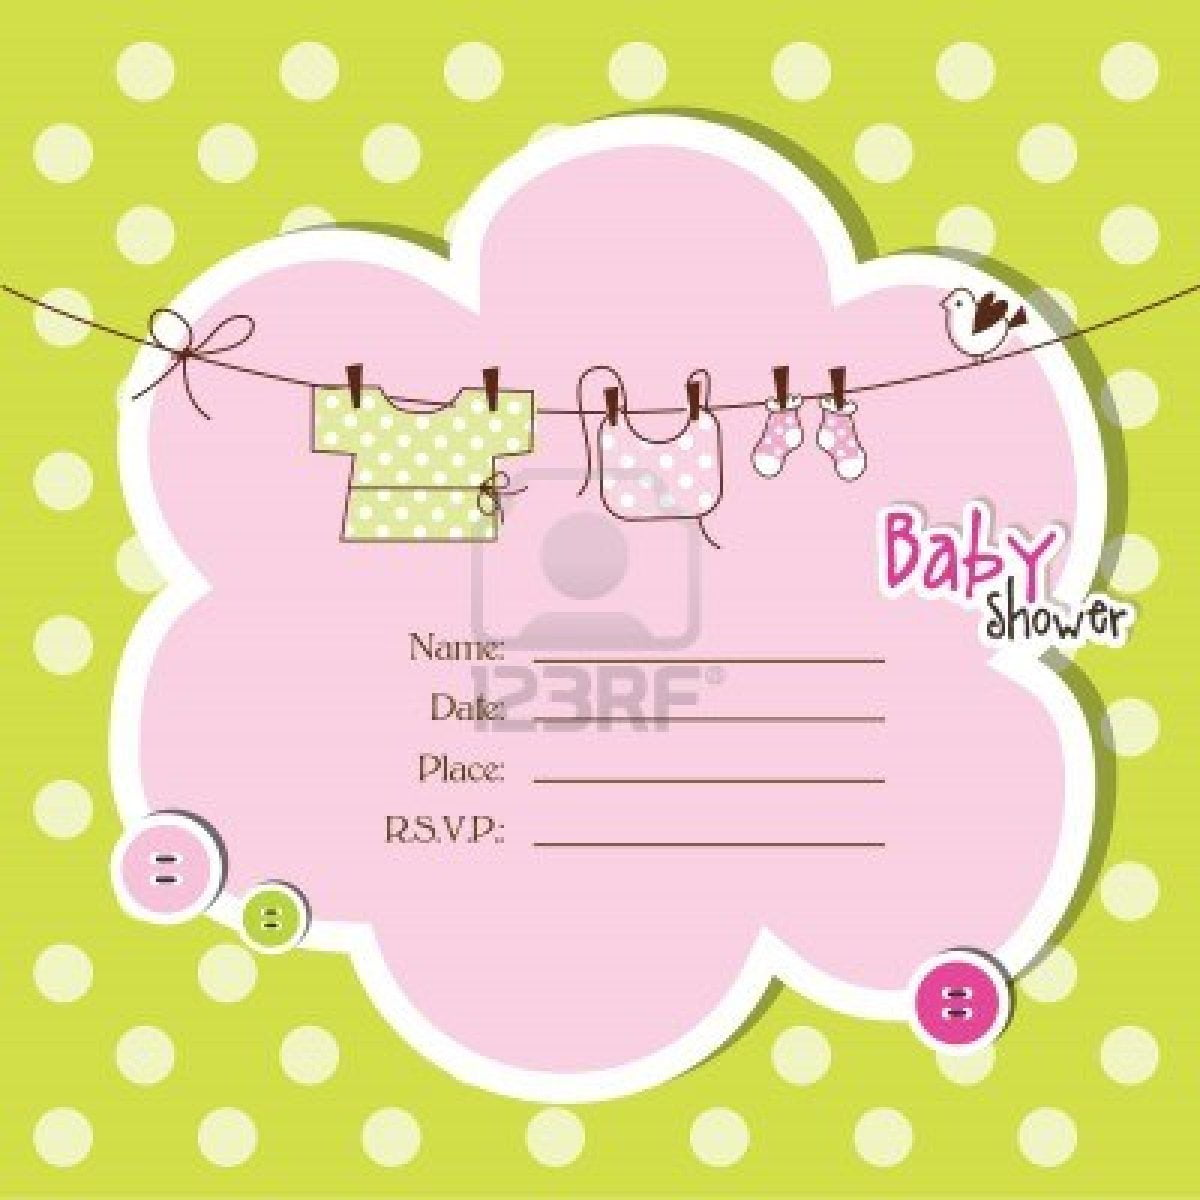 Free baby shower invitations baby shower for parents for Free baby shower invitation templates